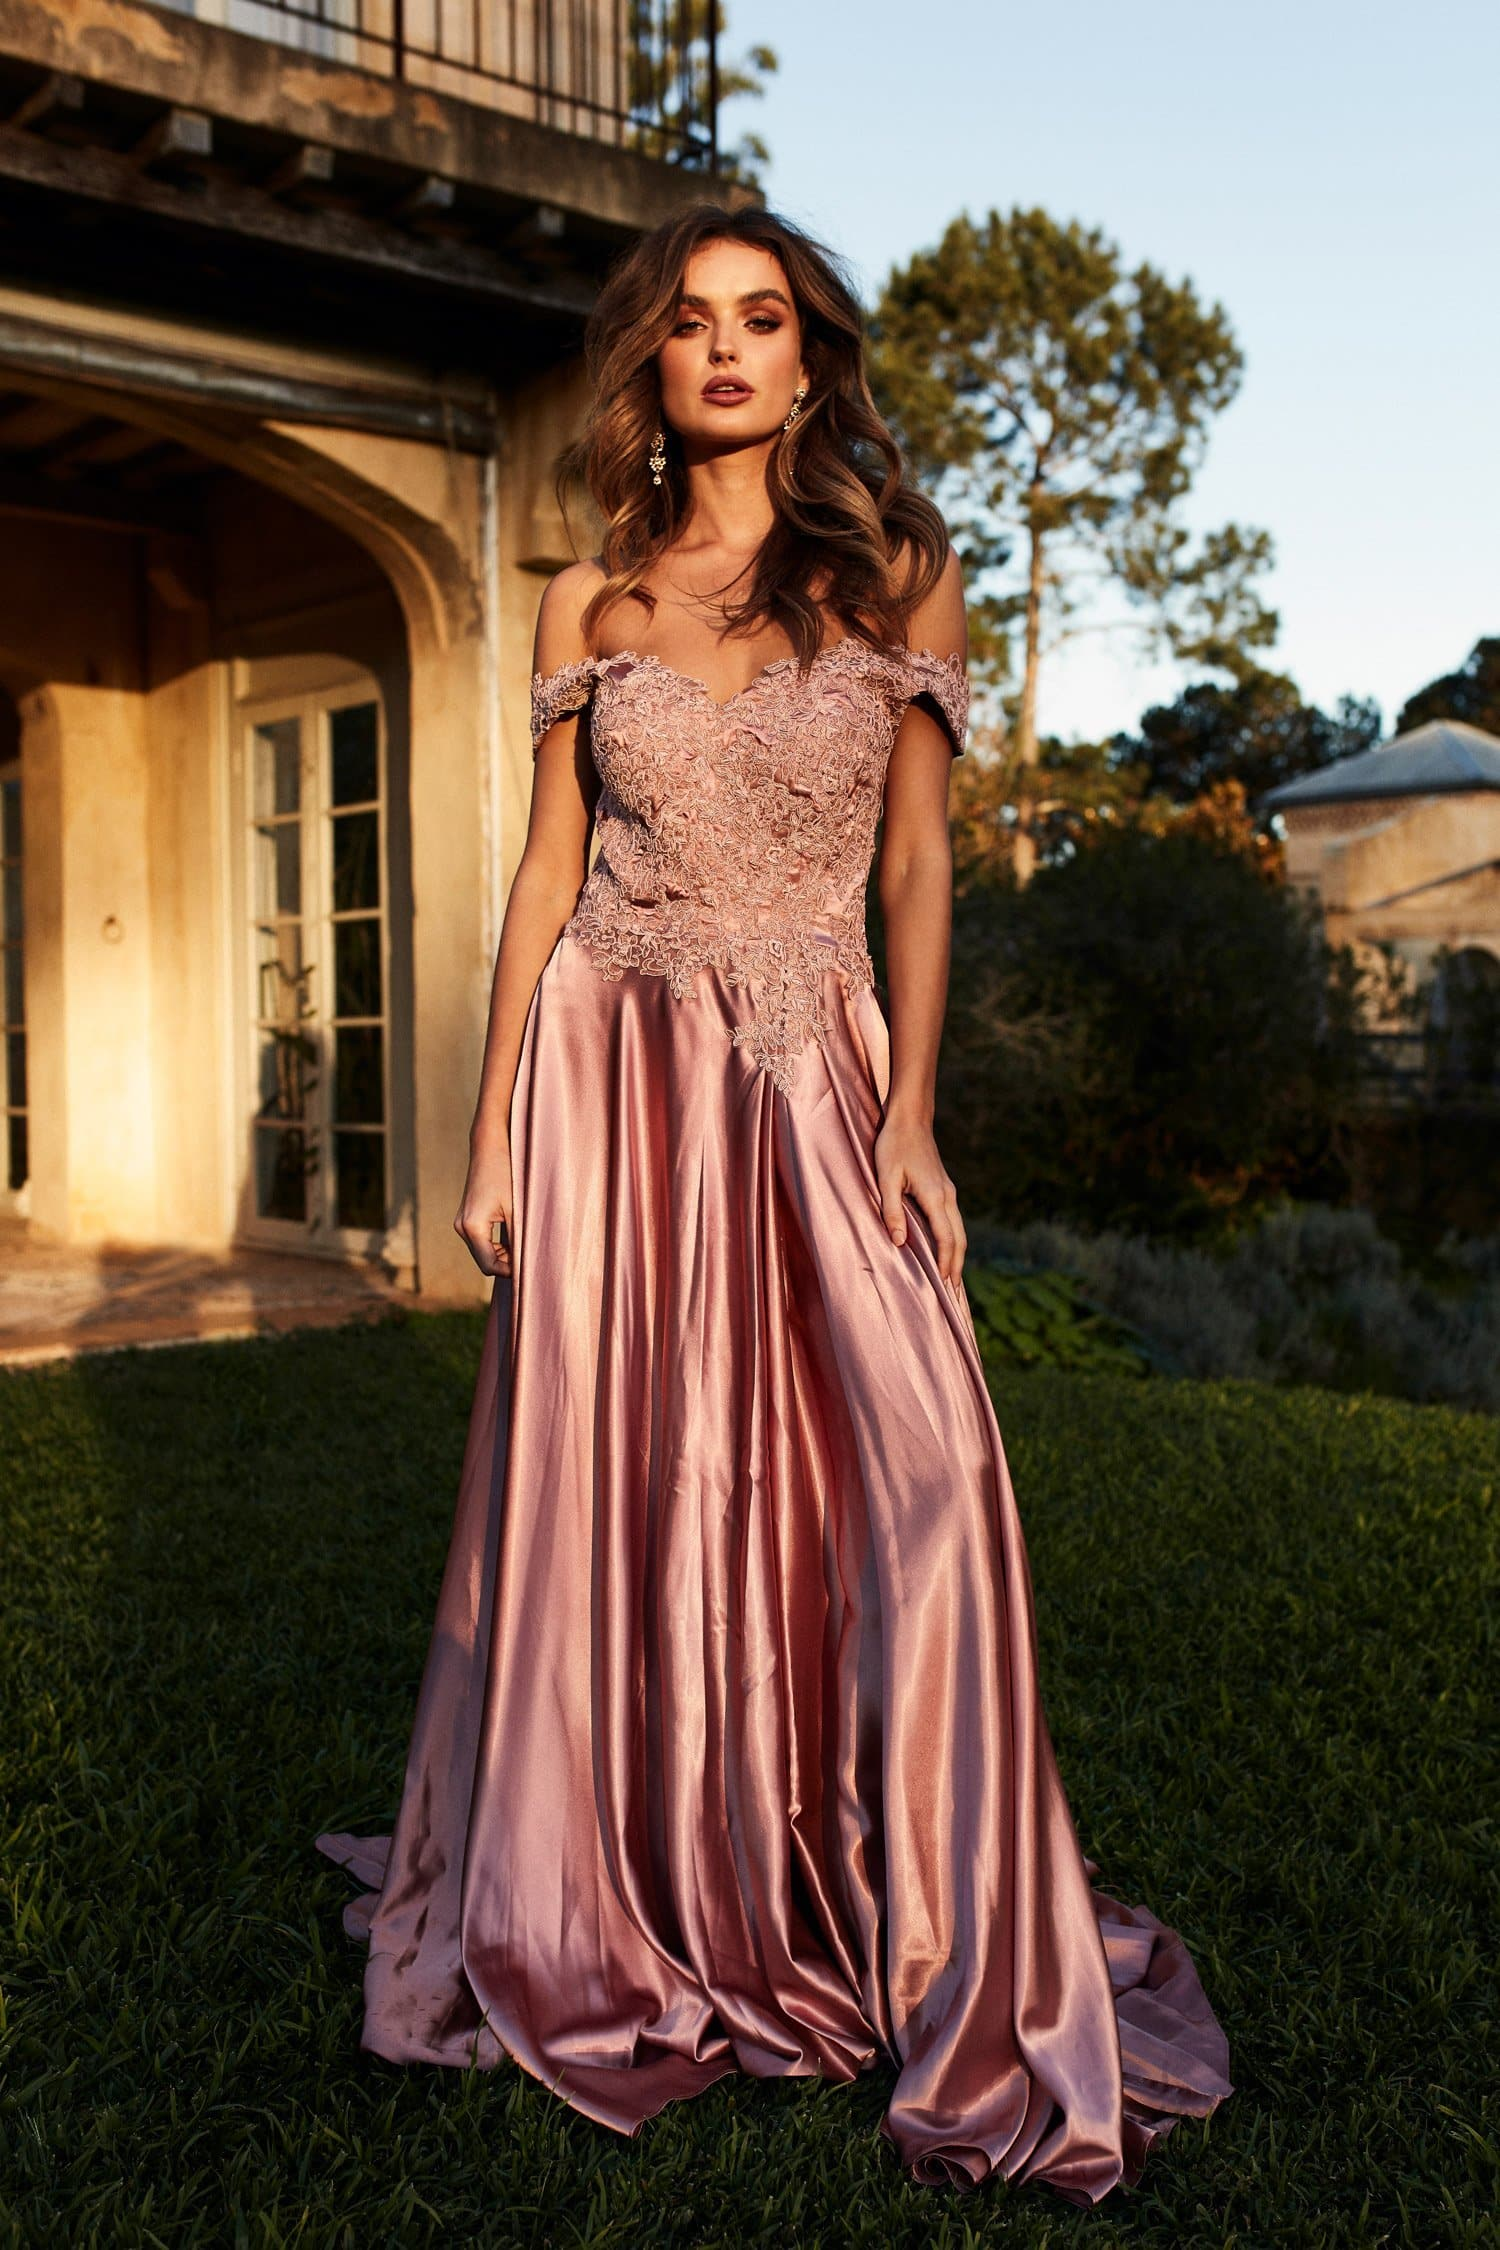 A&N Freya - Rose Gold Off Shoulder Gown Made From Lace & Satin